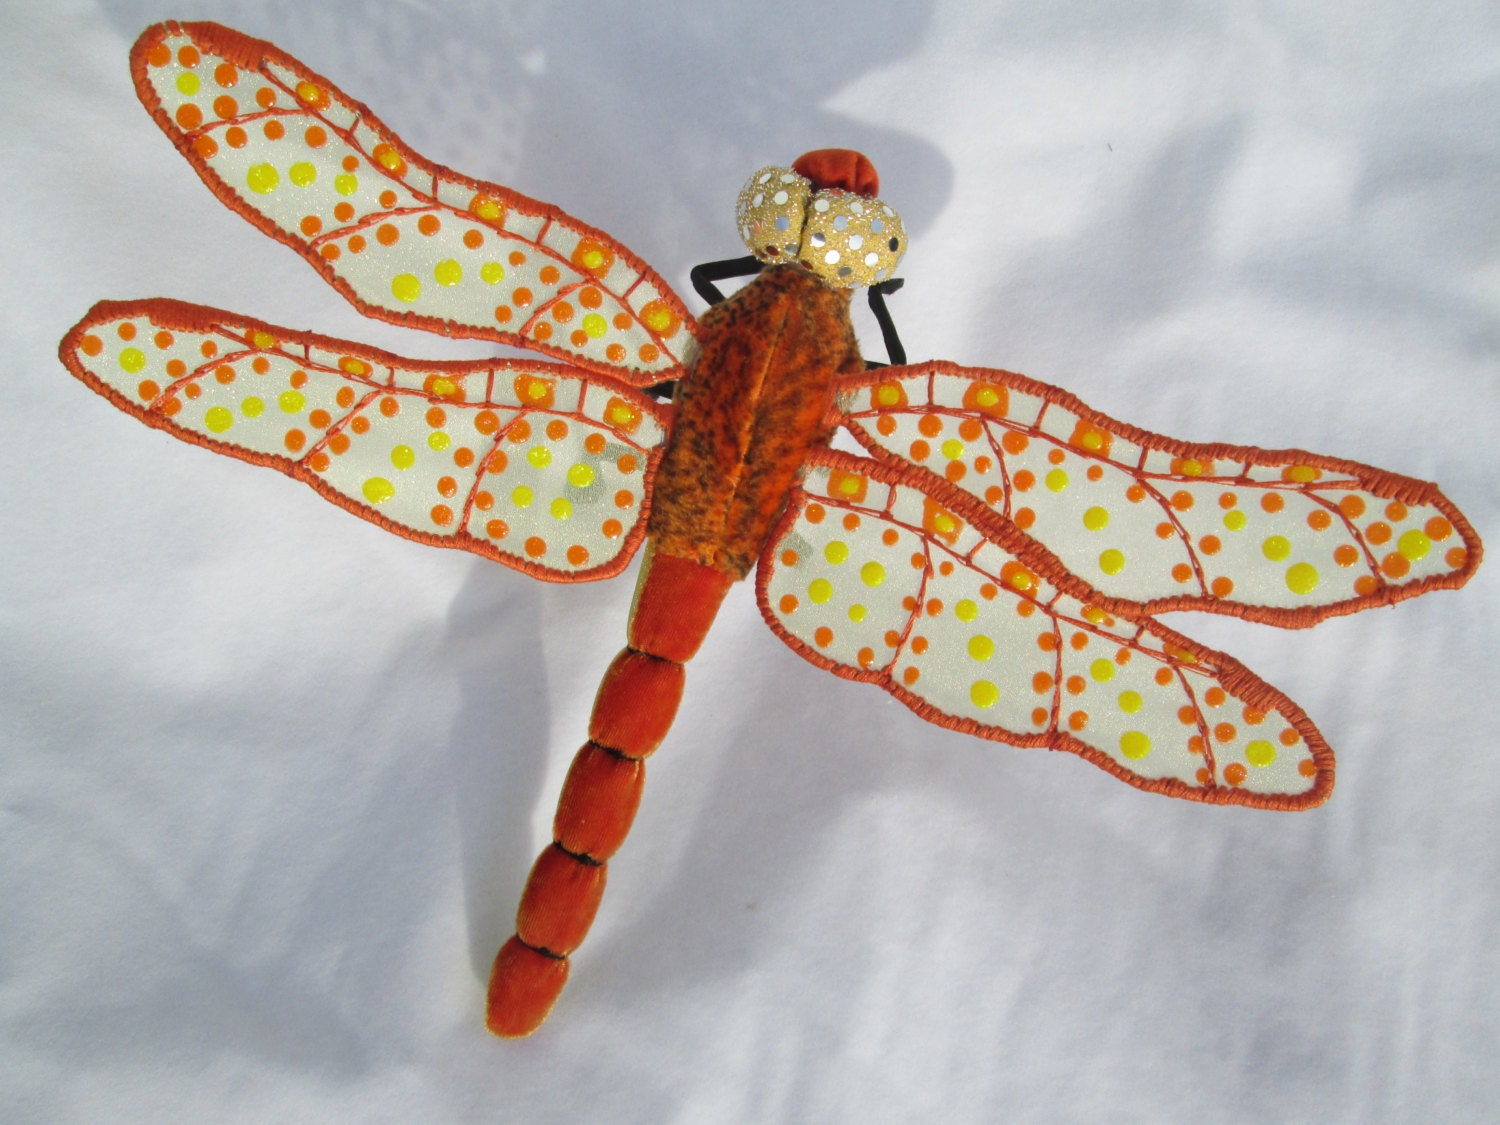 Dragonfly wall hanging art decor orange yellow velvet for Dragonfly mural